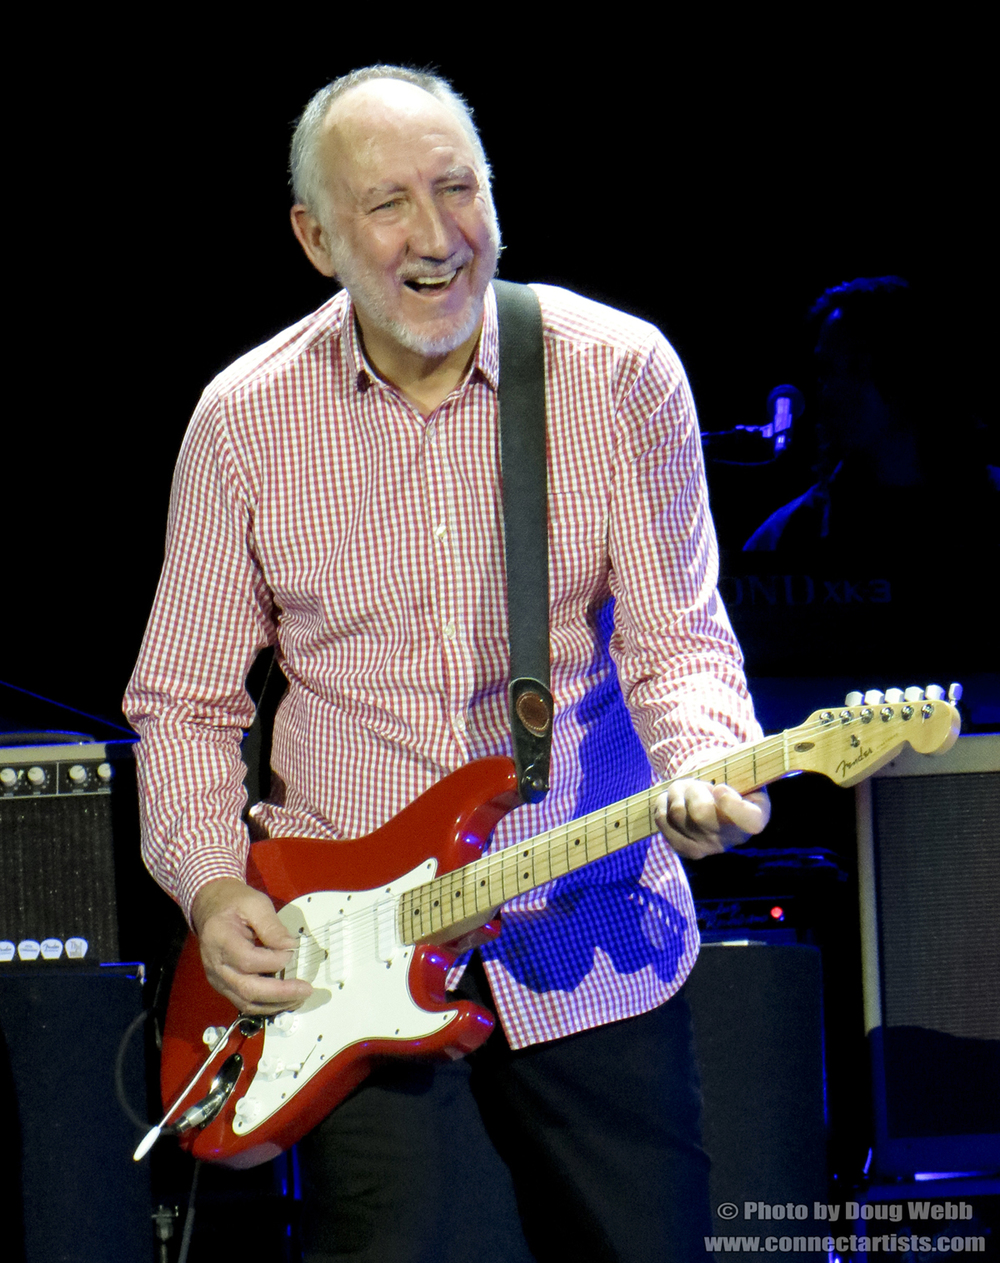 Pete Townshend / The Who / Target Center / Minneapolis, Minnesota / November 27th, 2012 / Photo by Doug Webb